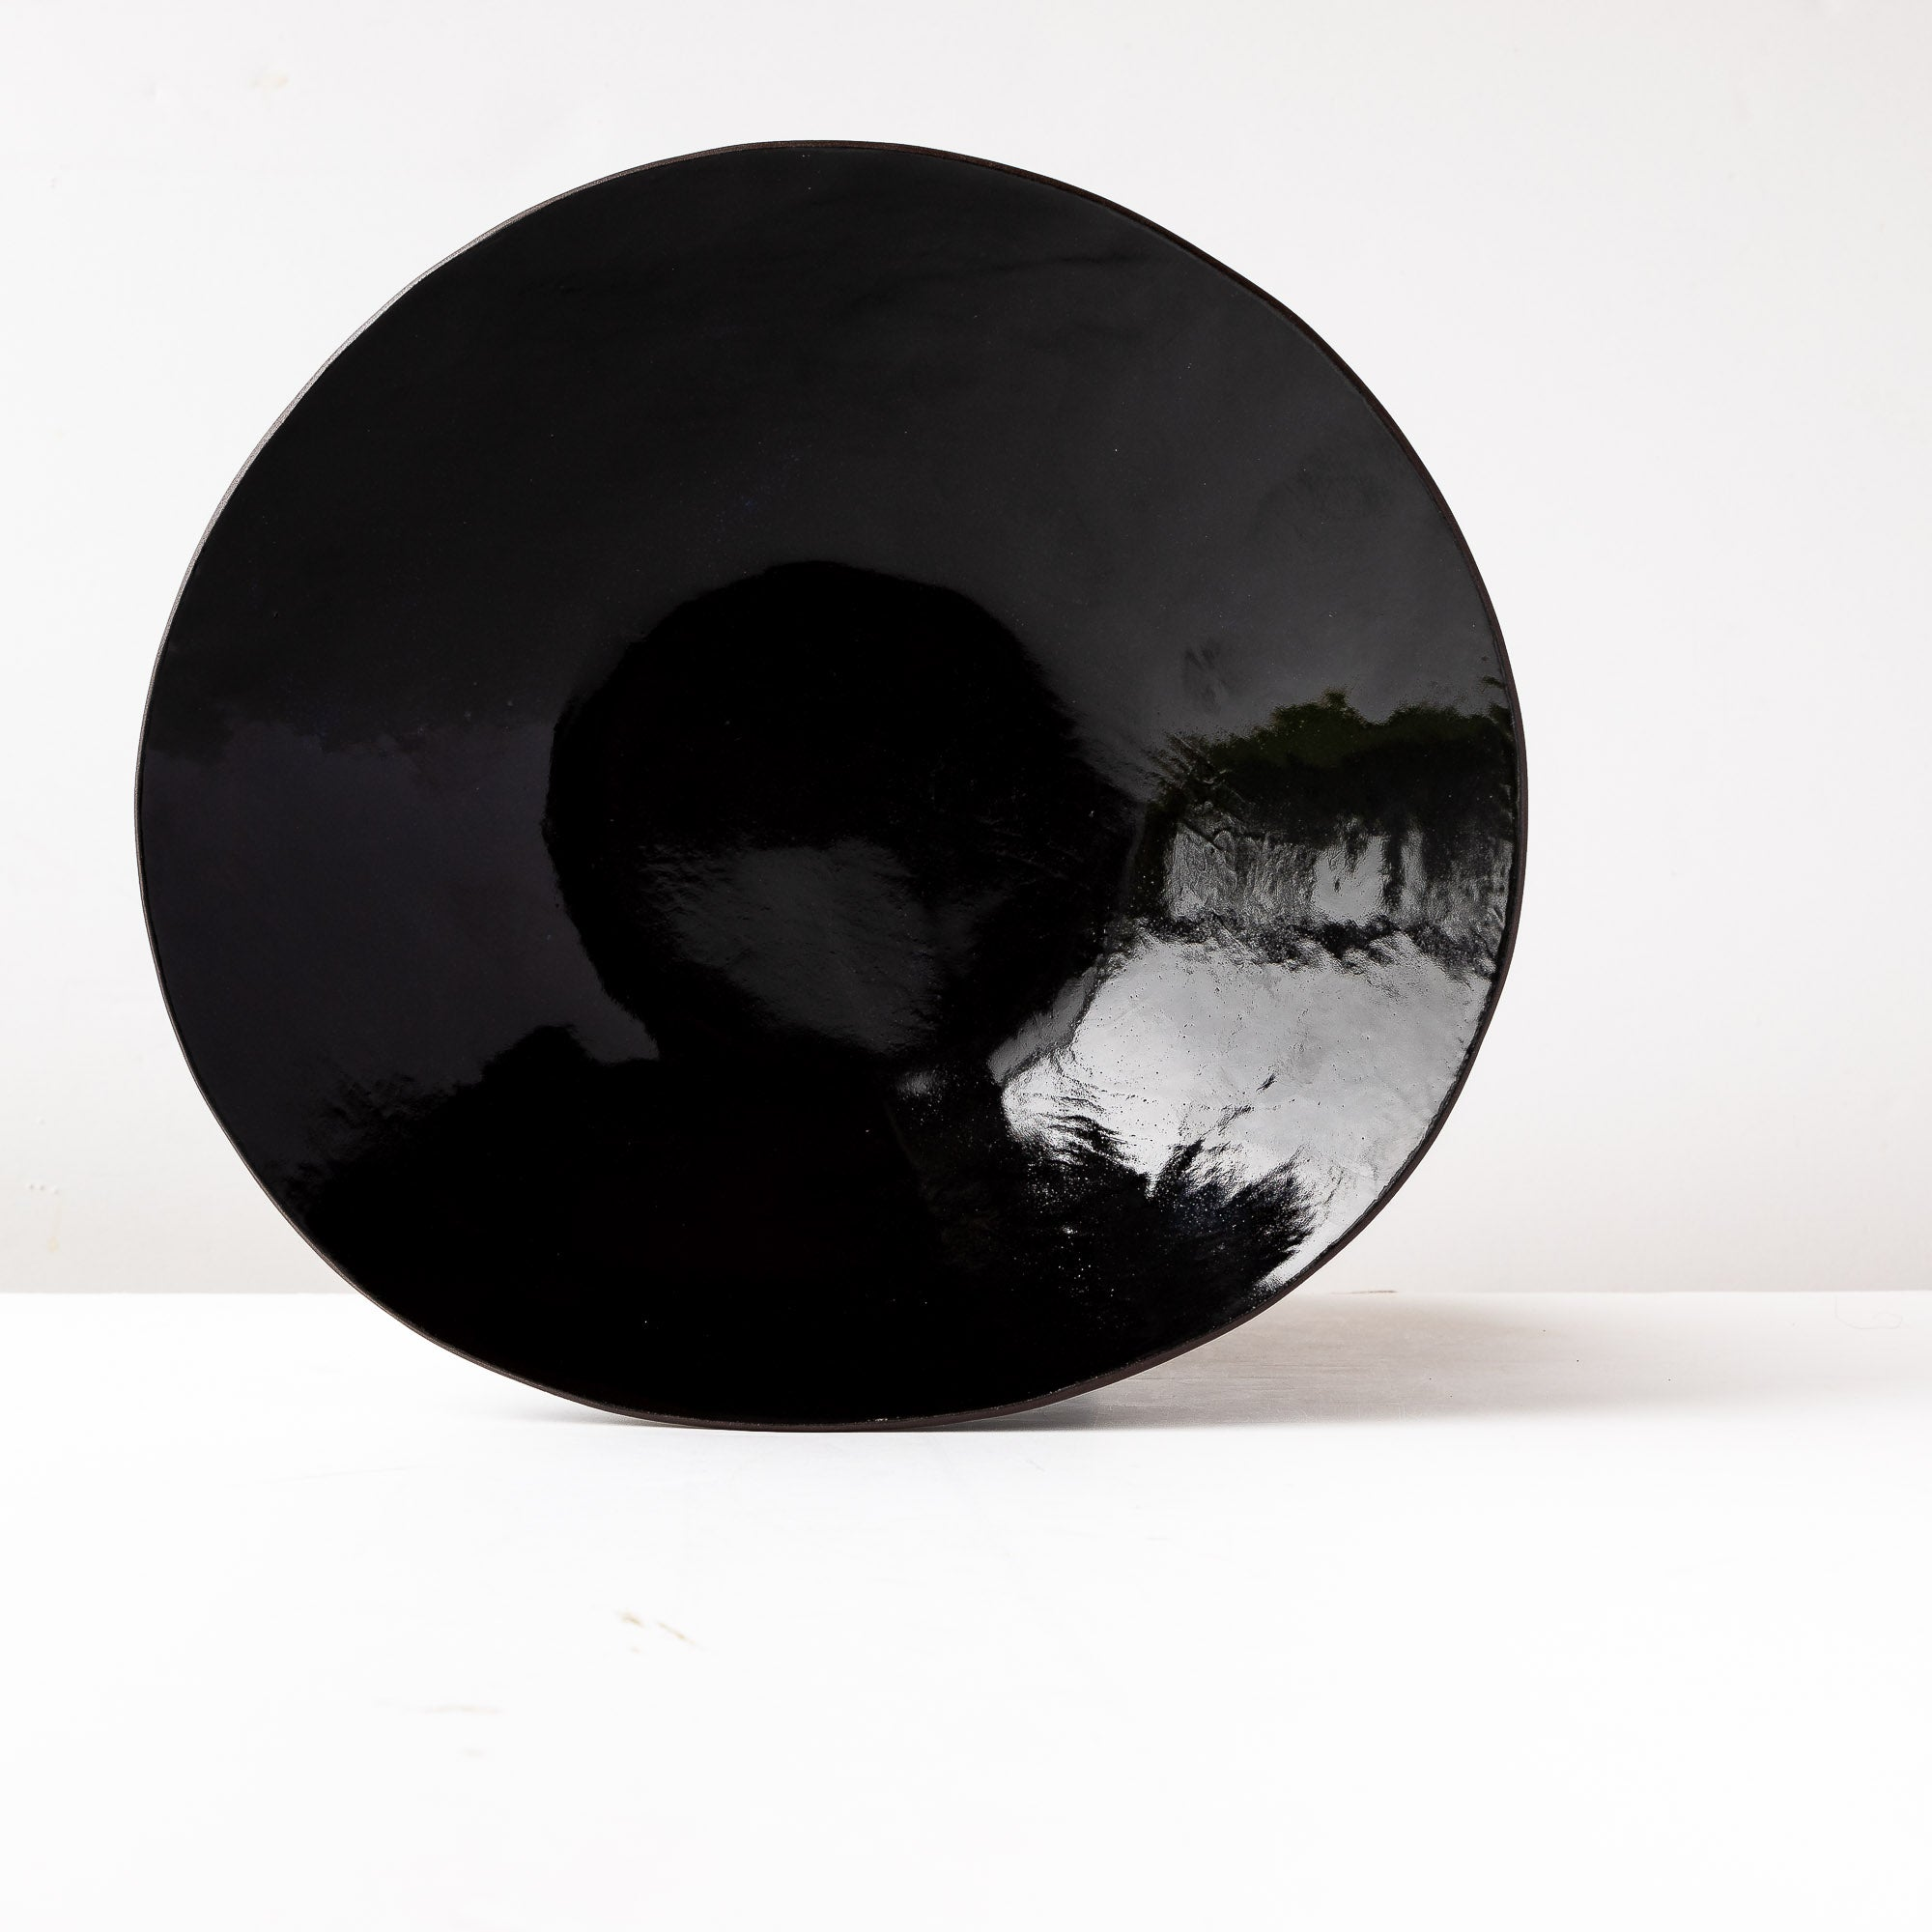 Hand Holding a Handcrafted Large Fruit Bowl in Black Lacquered Stoneware - Sold by Chic & Basta